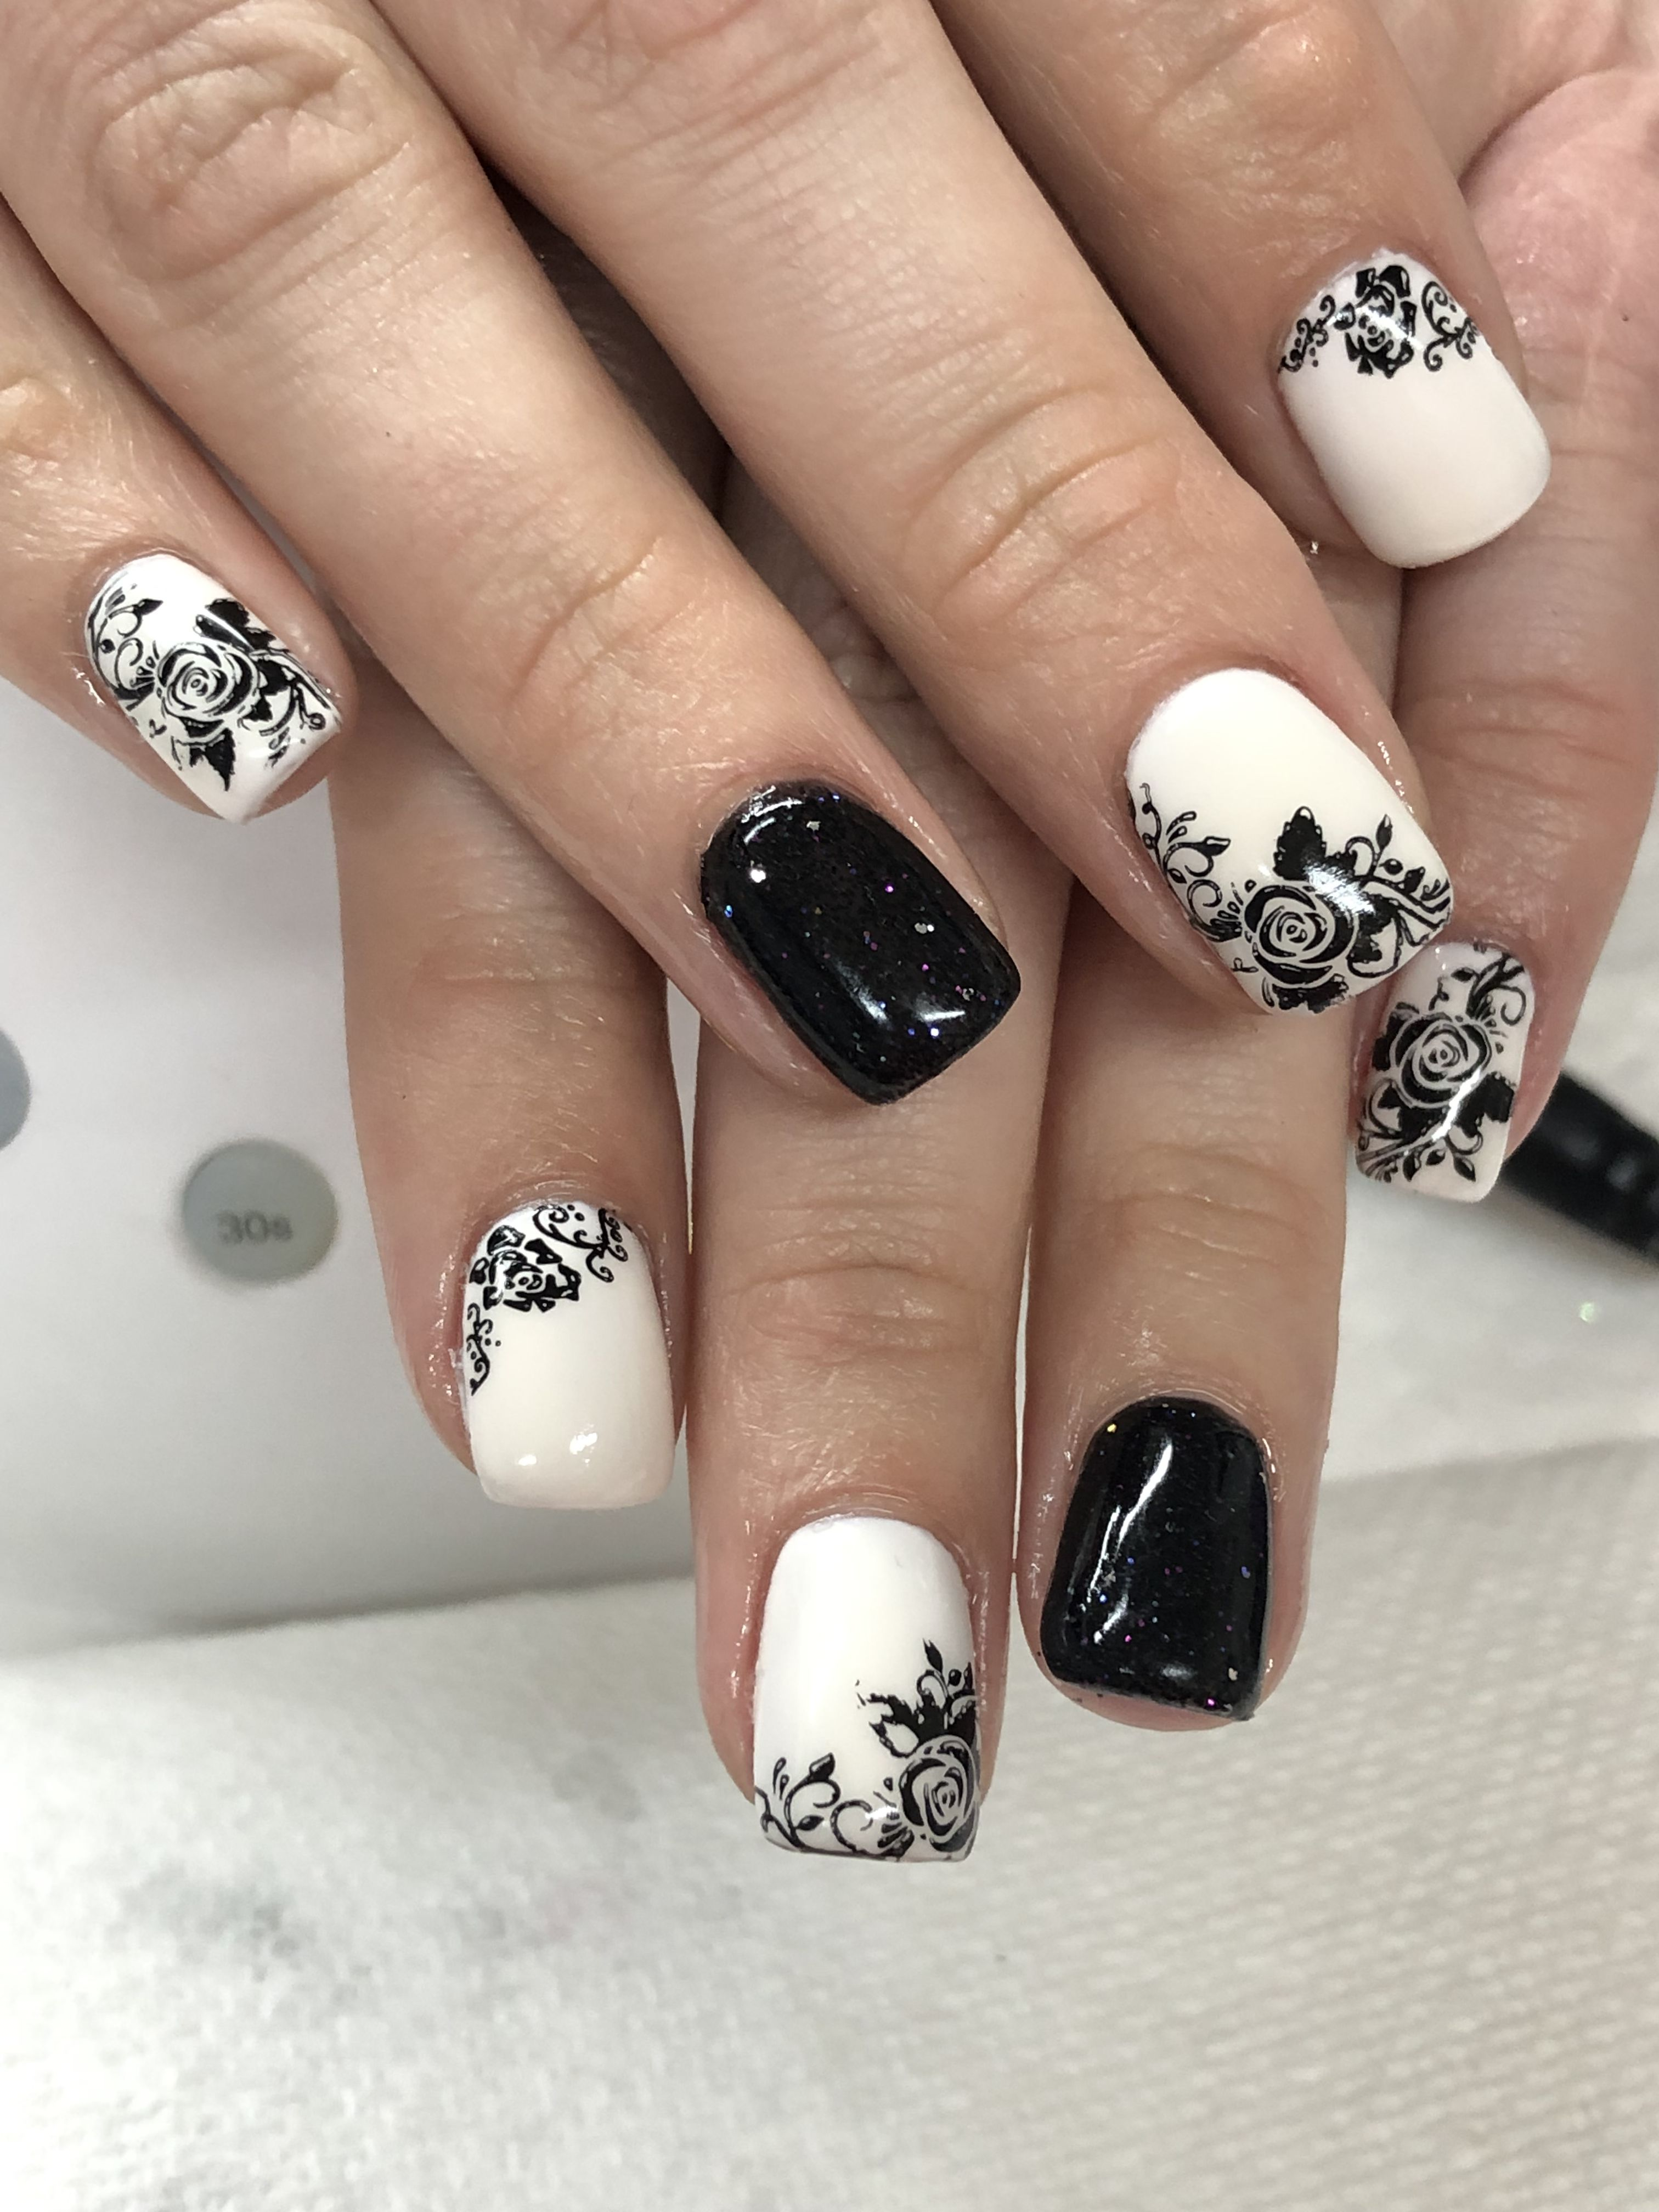 Black And White Off White Rose Gel Nails With Images Gel